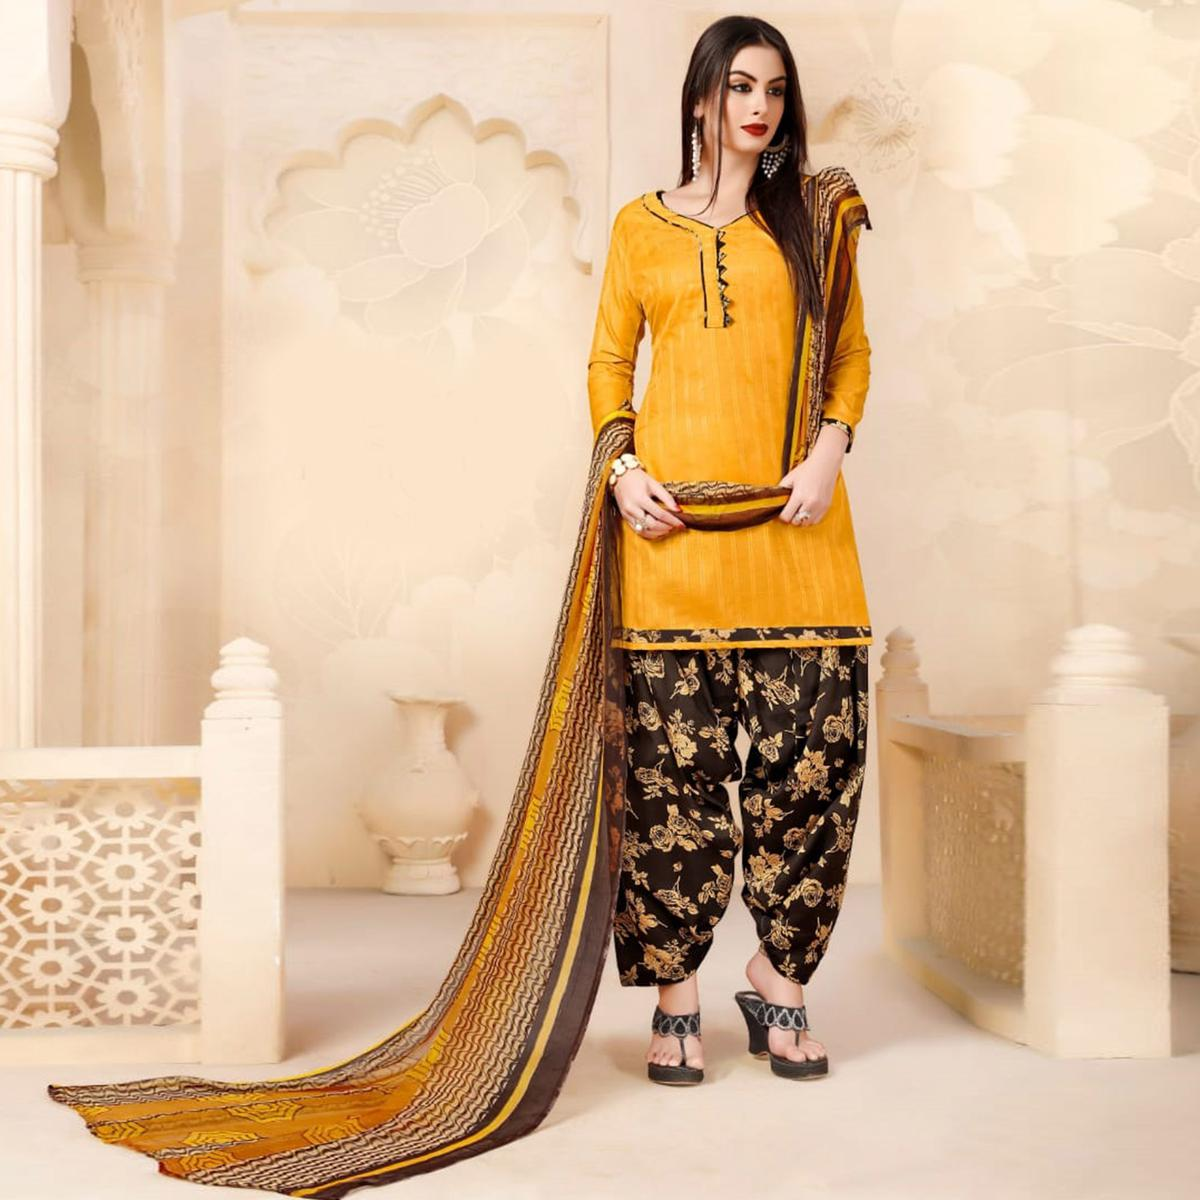 Ravishing Yellow Colored Casual Wear Printed Cotton - Jacquard Salwar suit